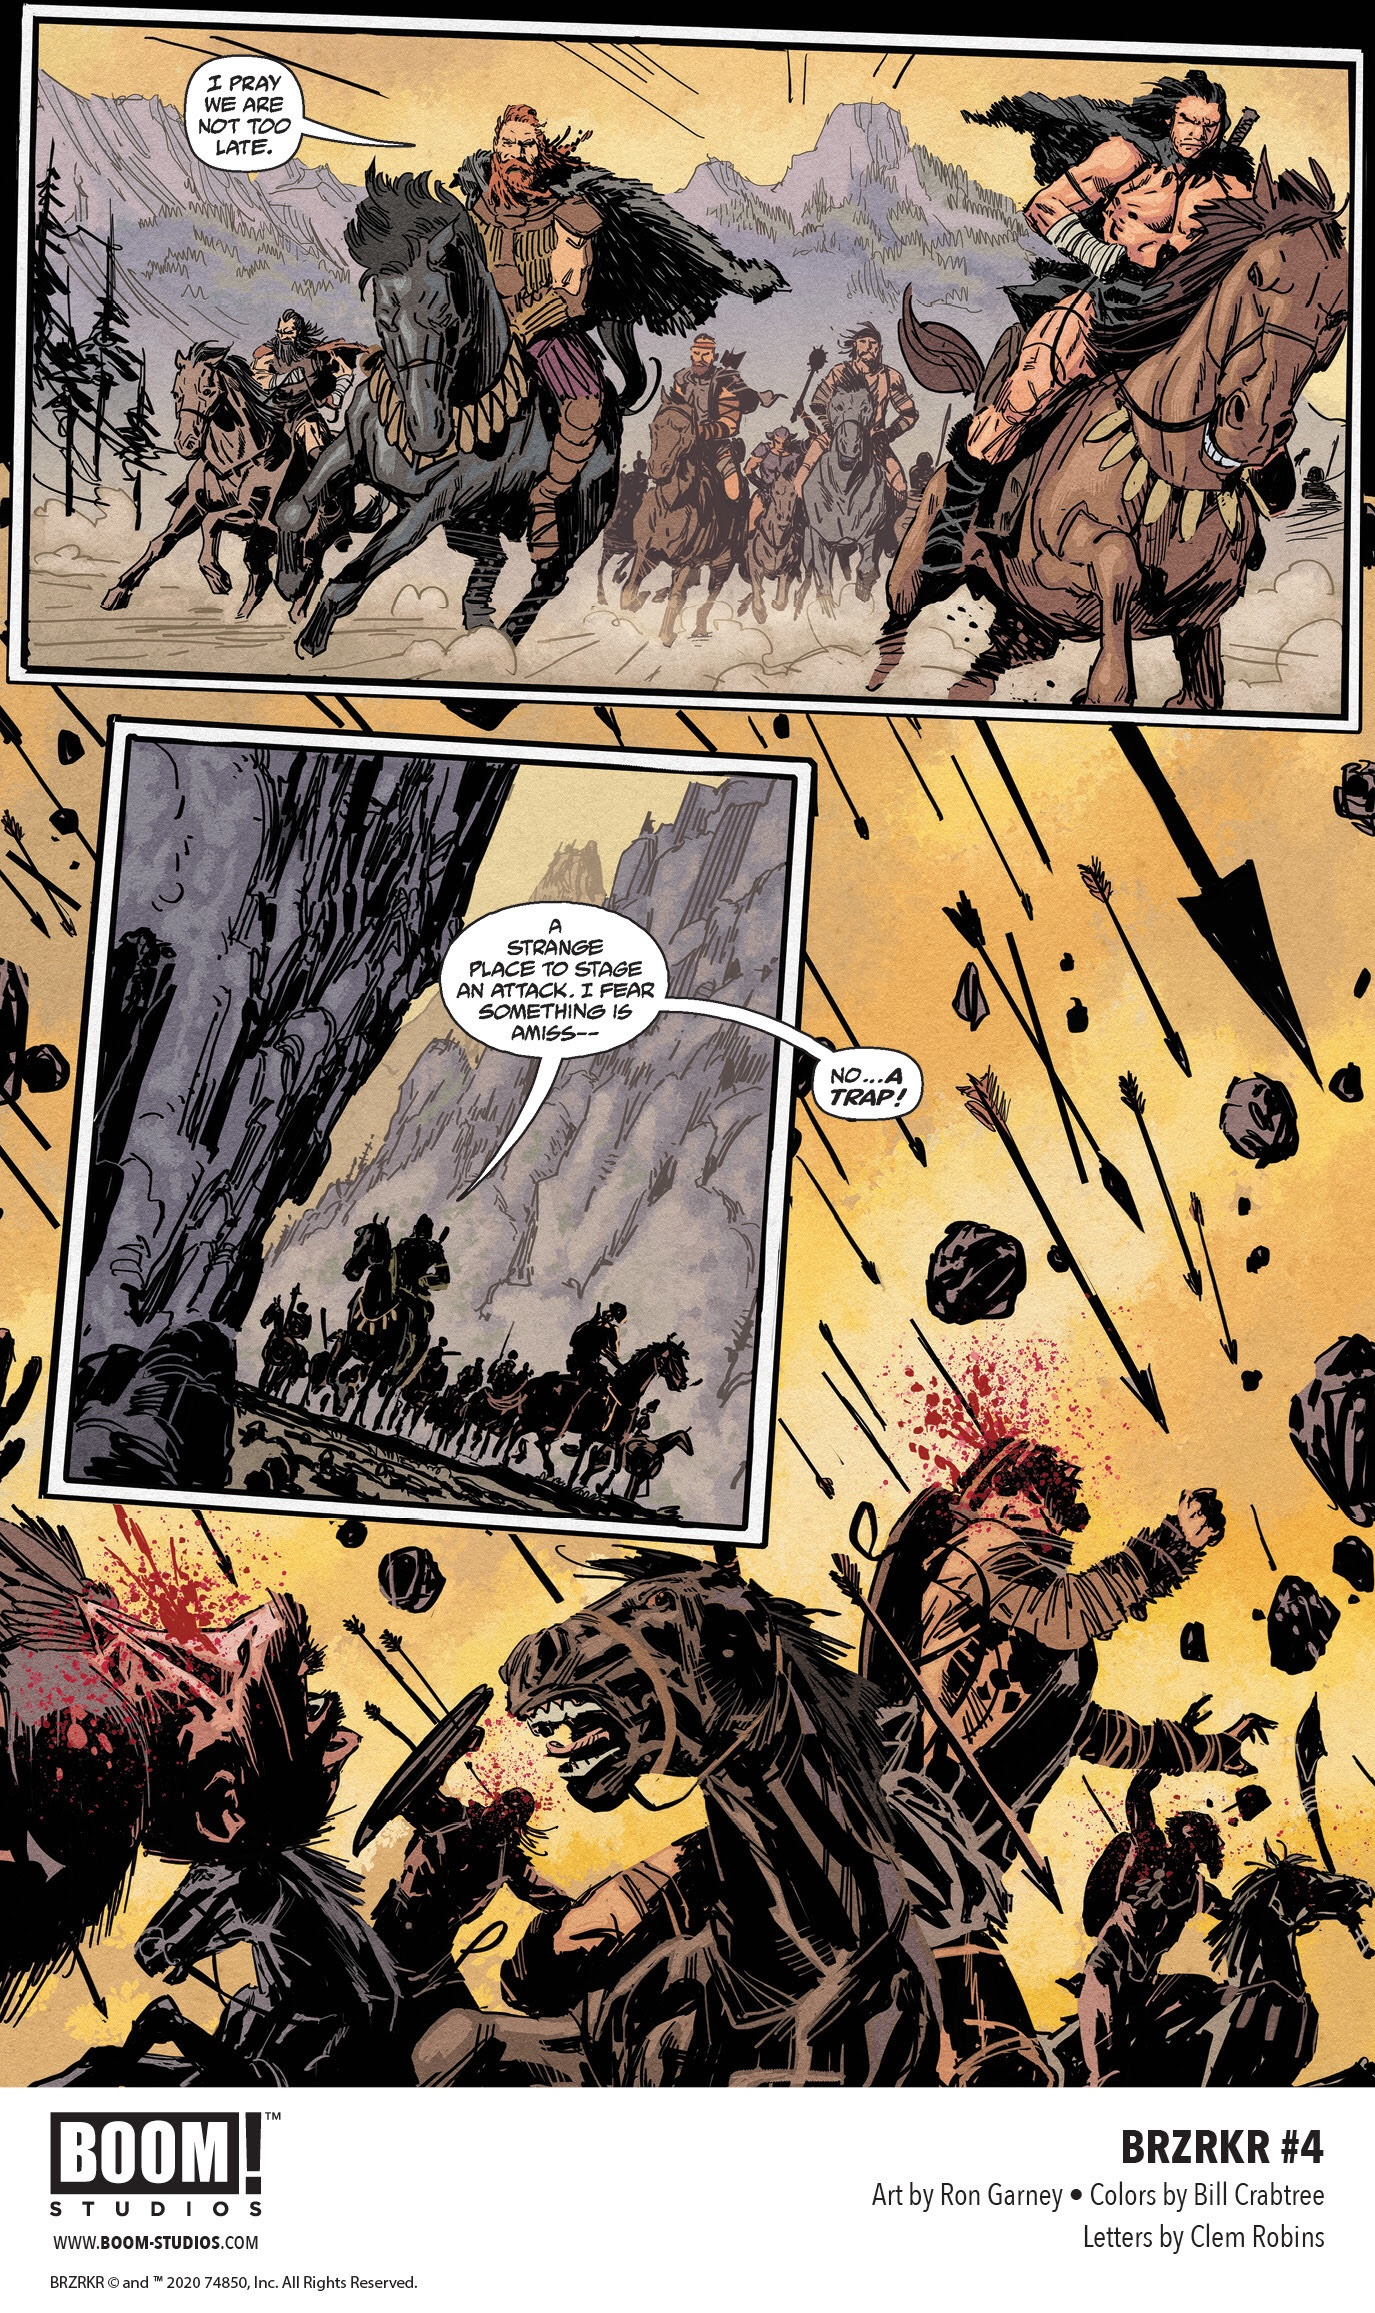 , Unlock the Mystery of B.'s Tragic Existence in BRZRKR #4, The Indie Comix Dispatch